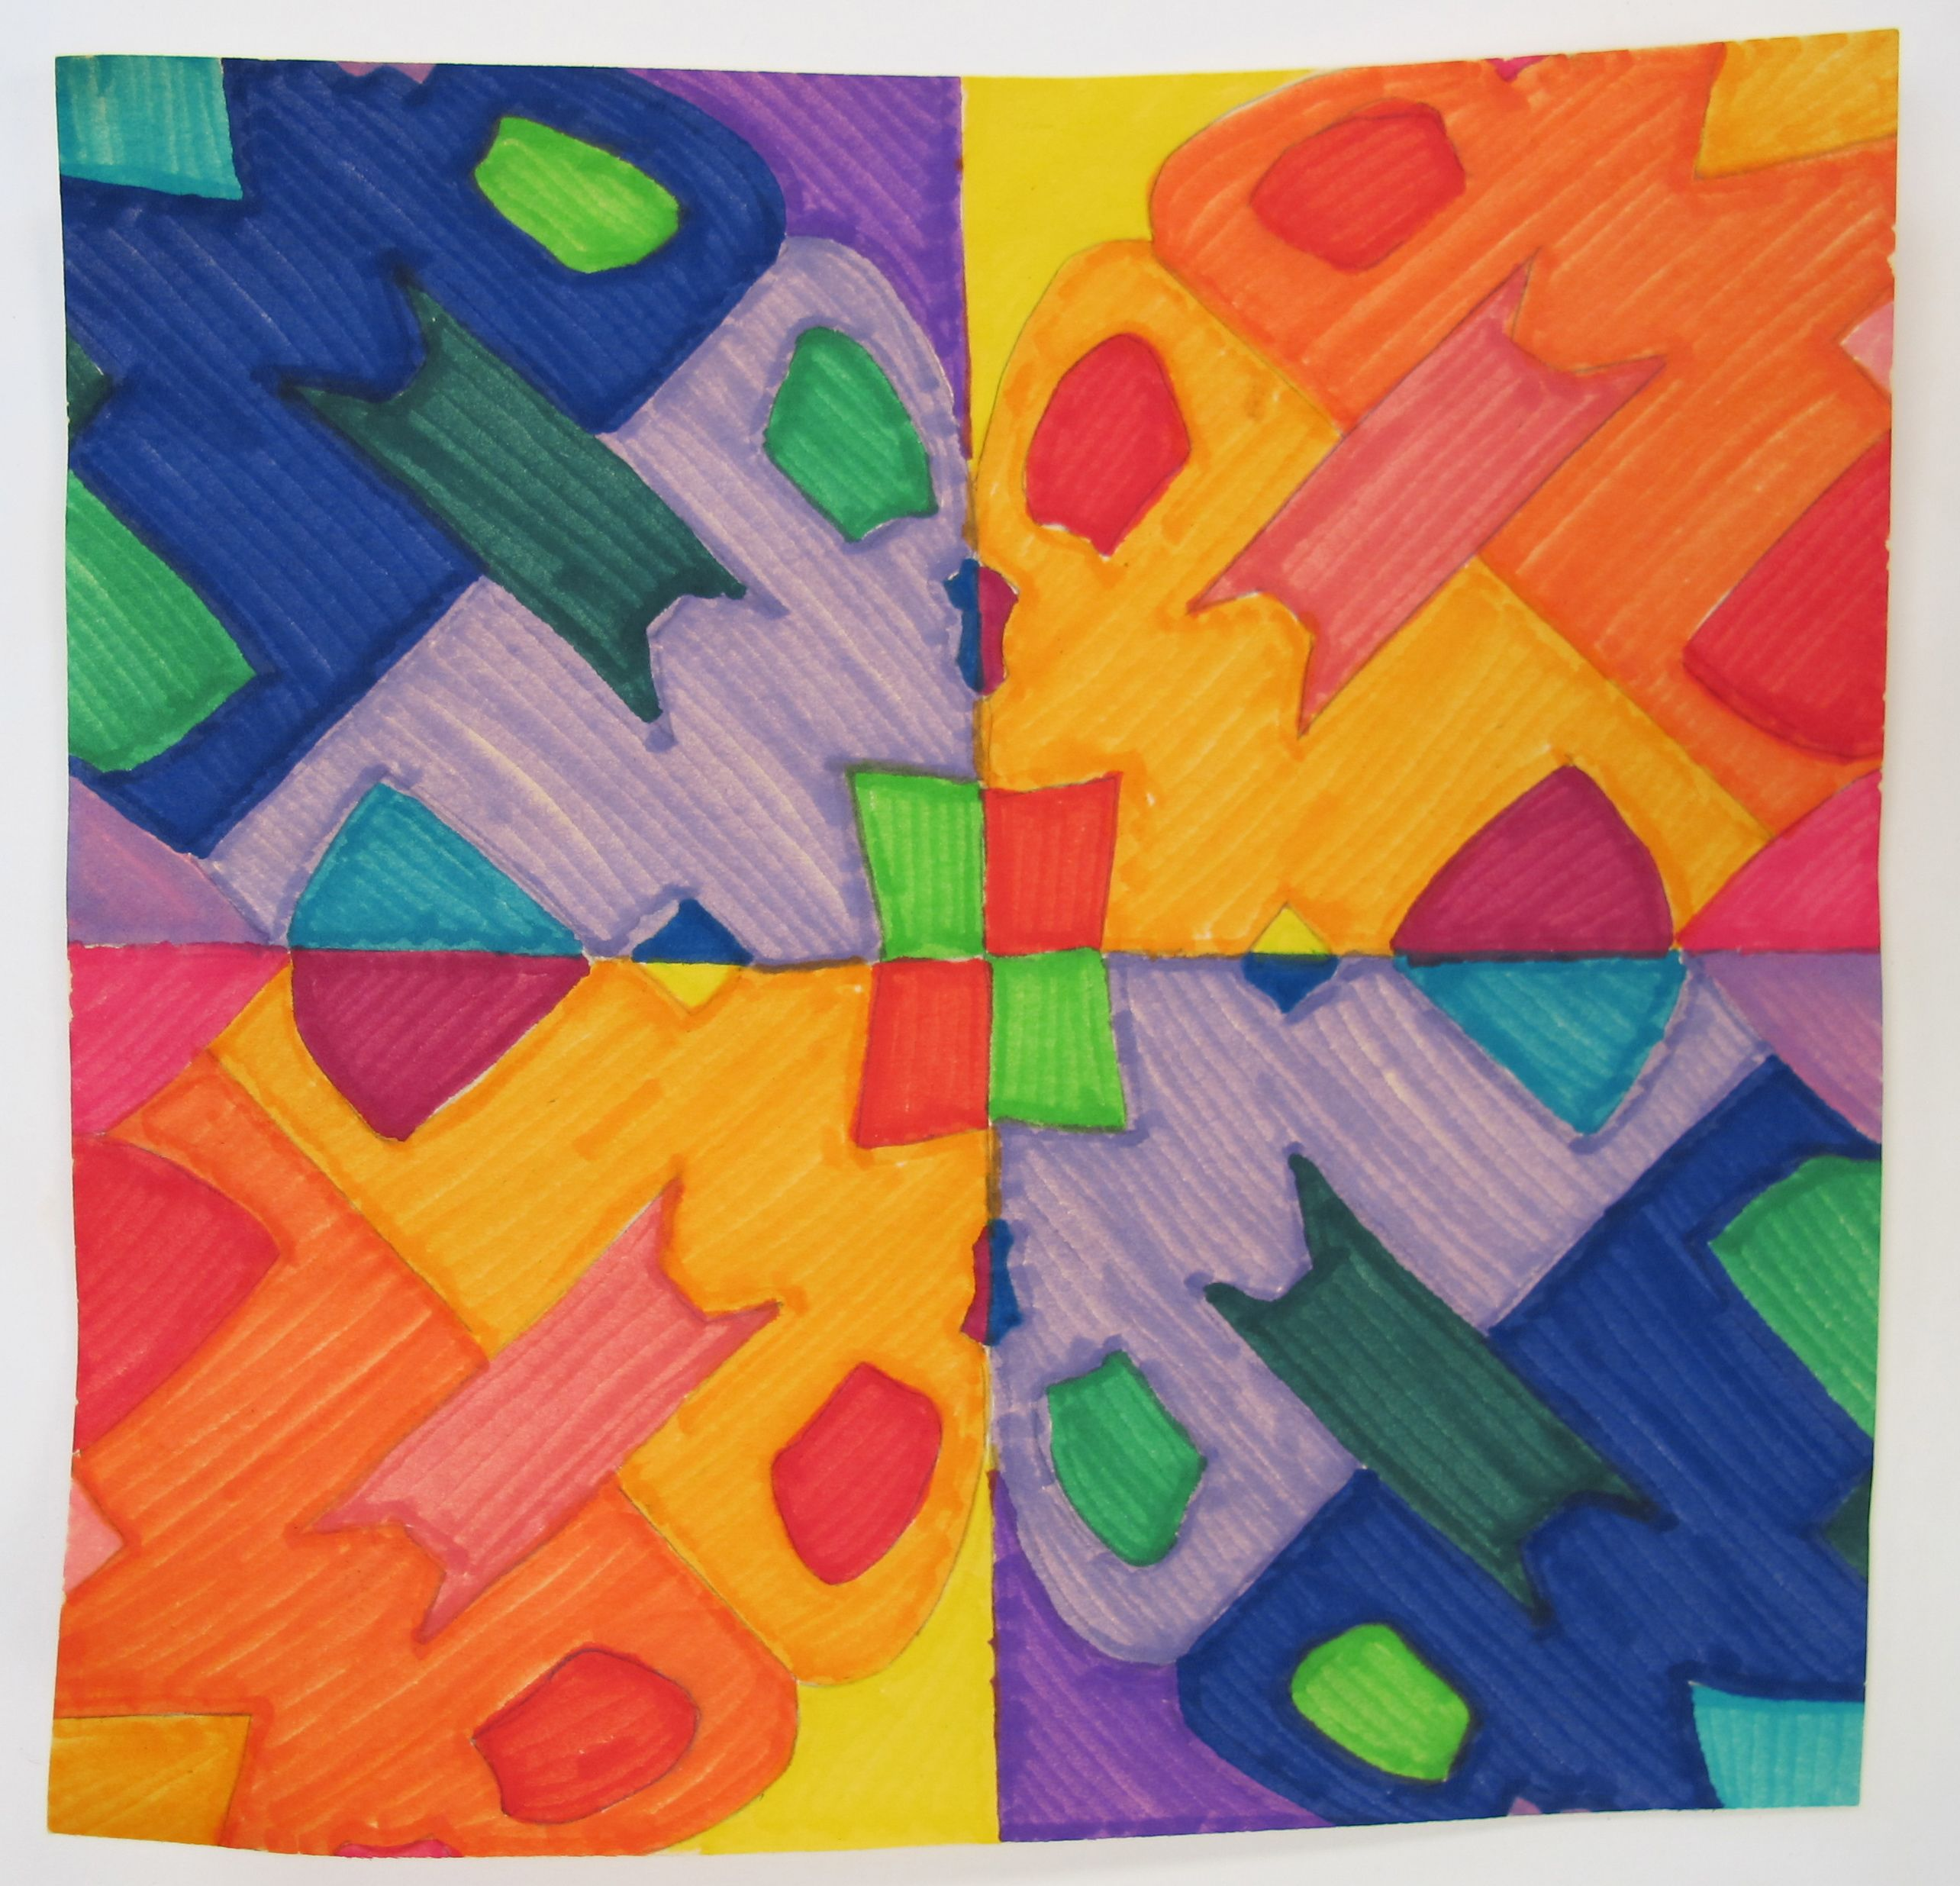 Initials With Symmetry And Warm Cool Colors Middle School Upper Elementary Project 6th Grade Art Art Projects Art Lessons [ 2471 x 2568 Pixel ]